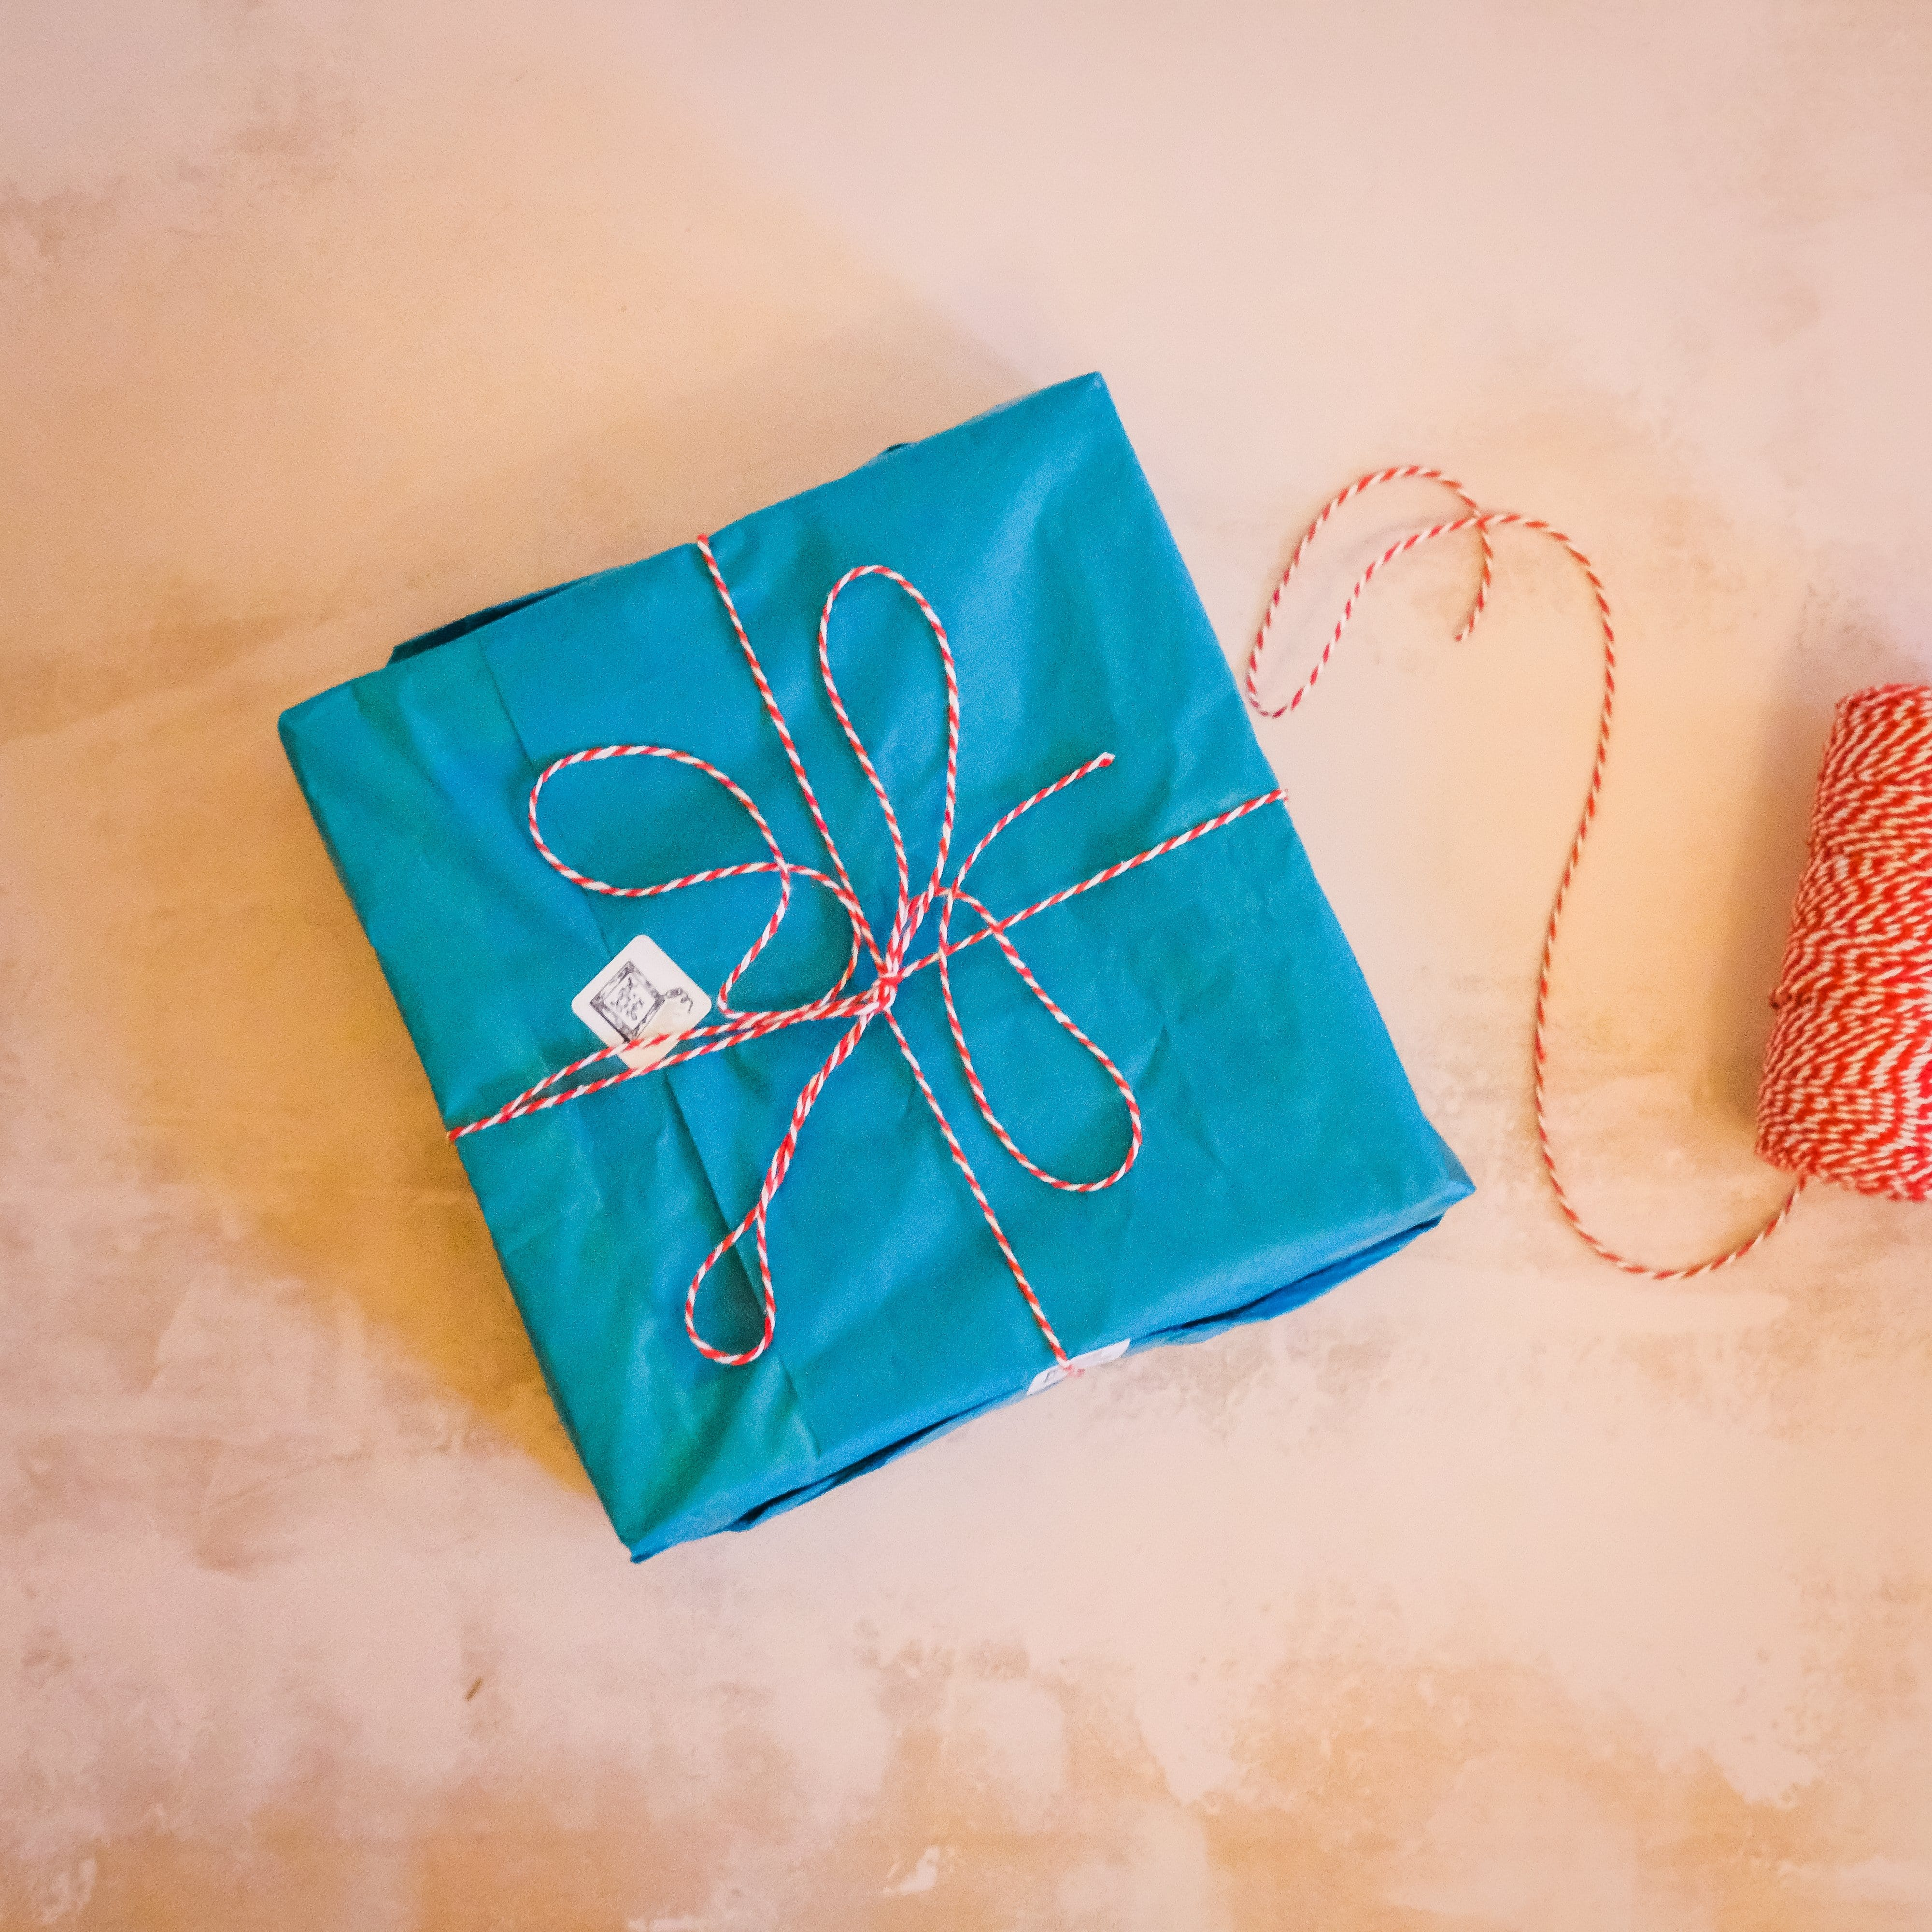 Wooden light box wrapped in blue tissue paper